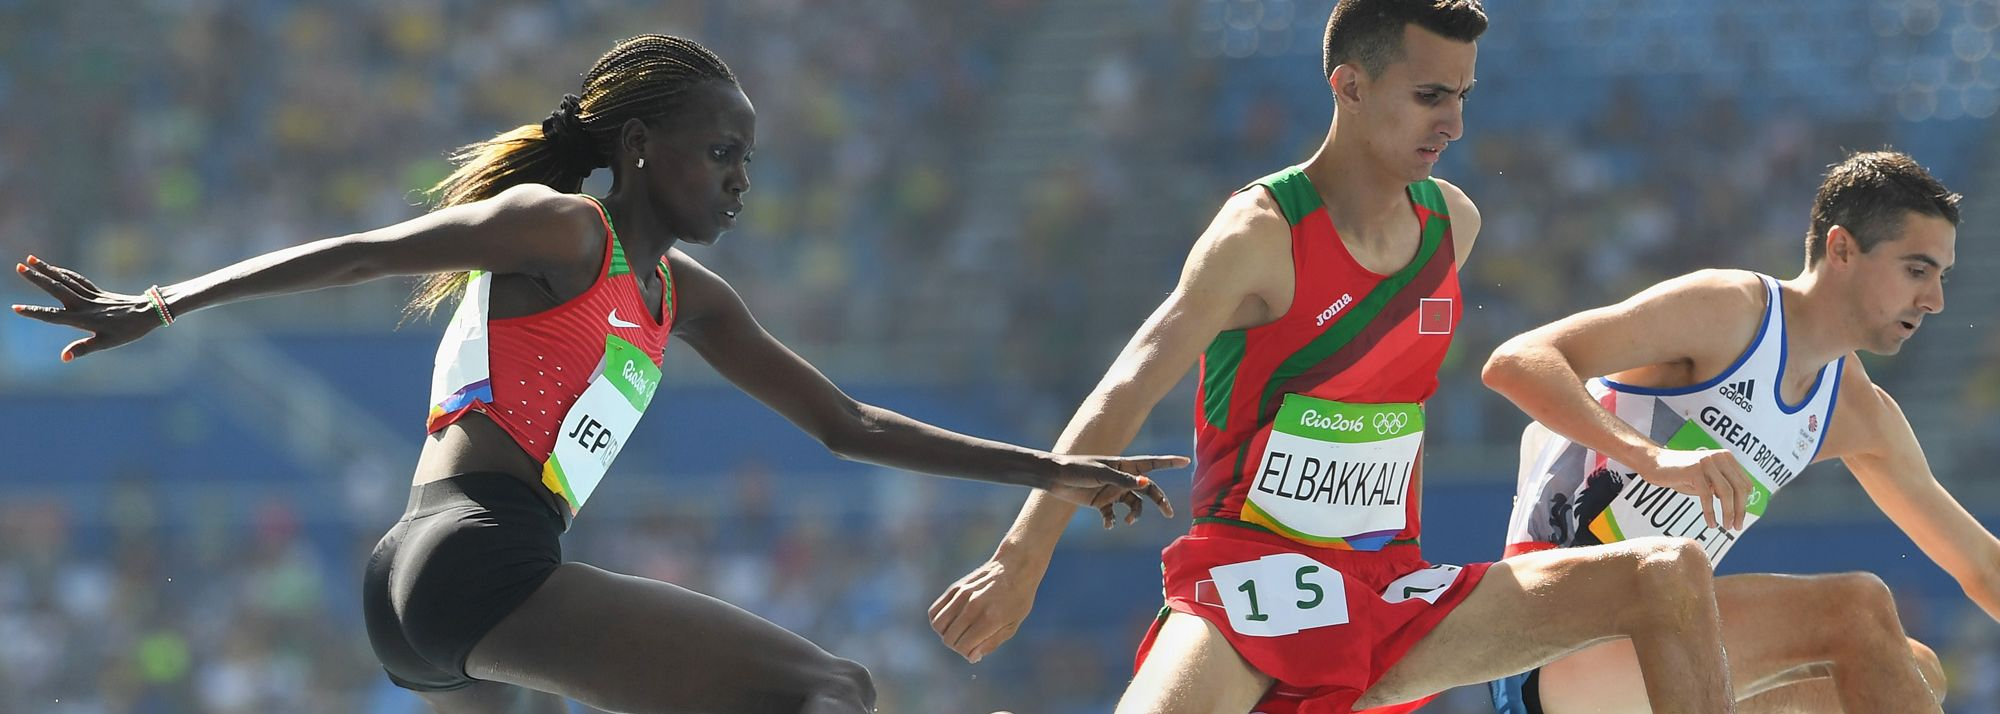 Expected highlights in the women's and men's 3000m steeplechase.